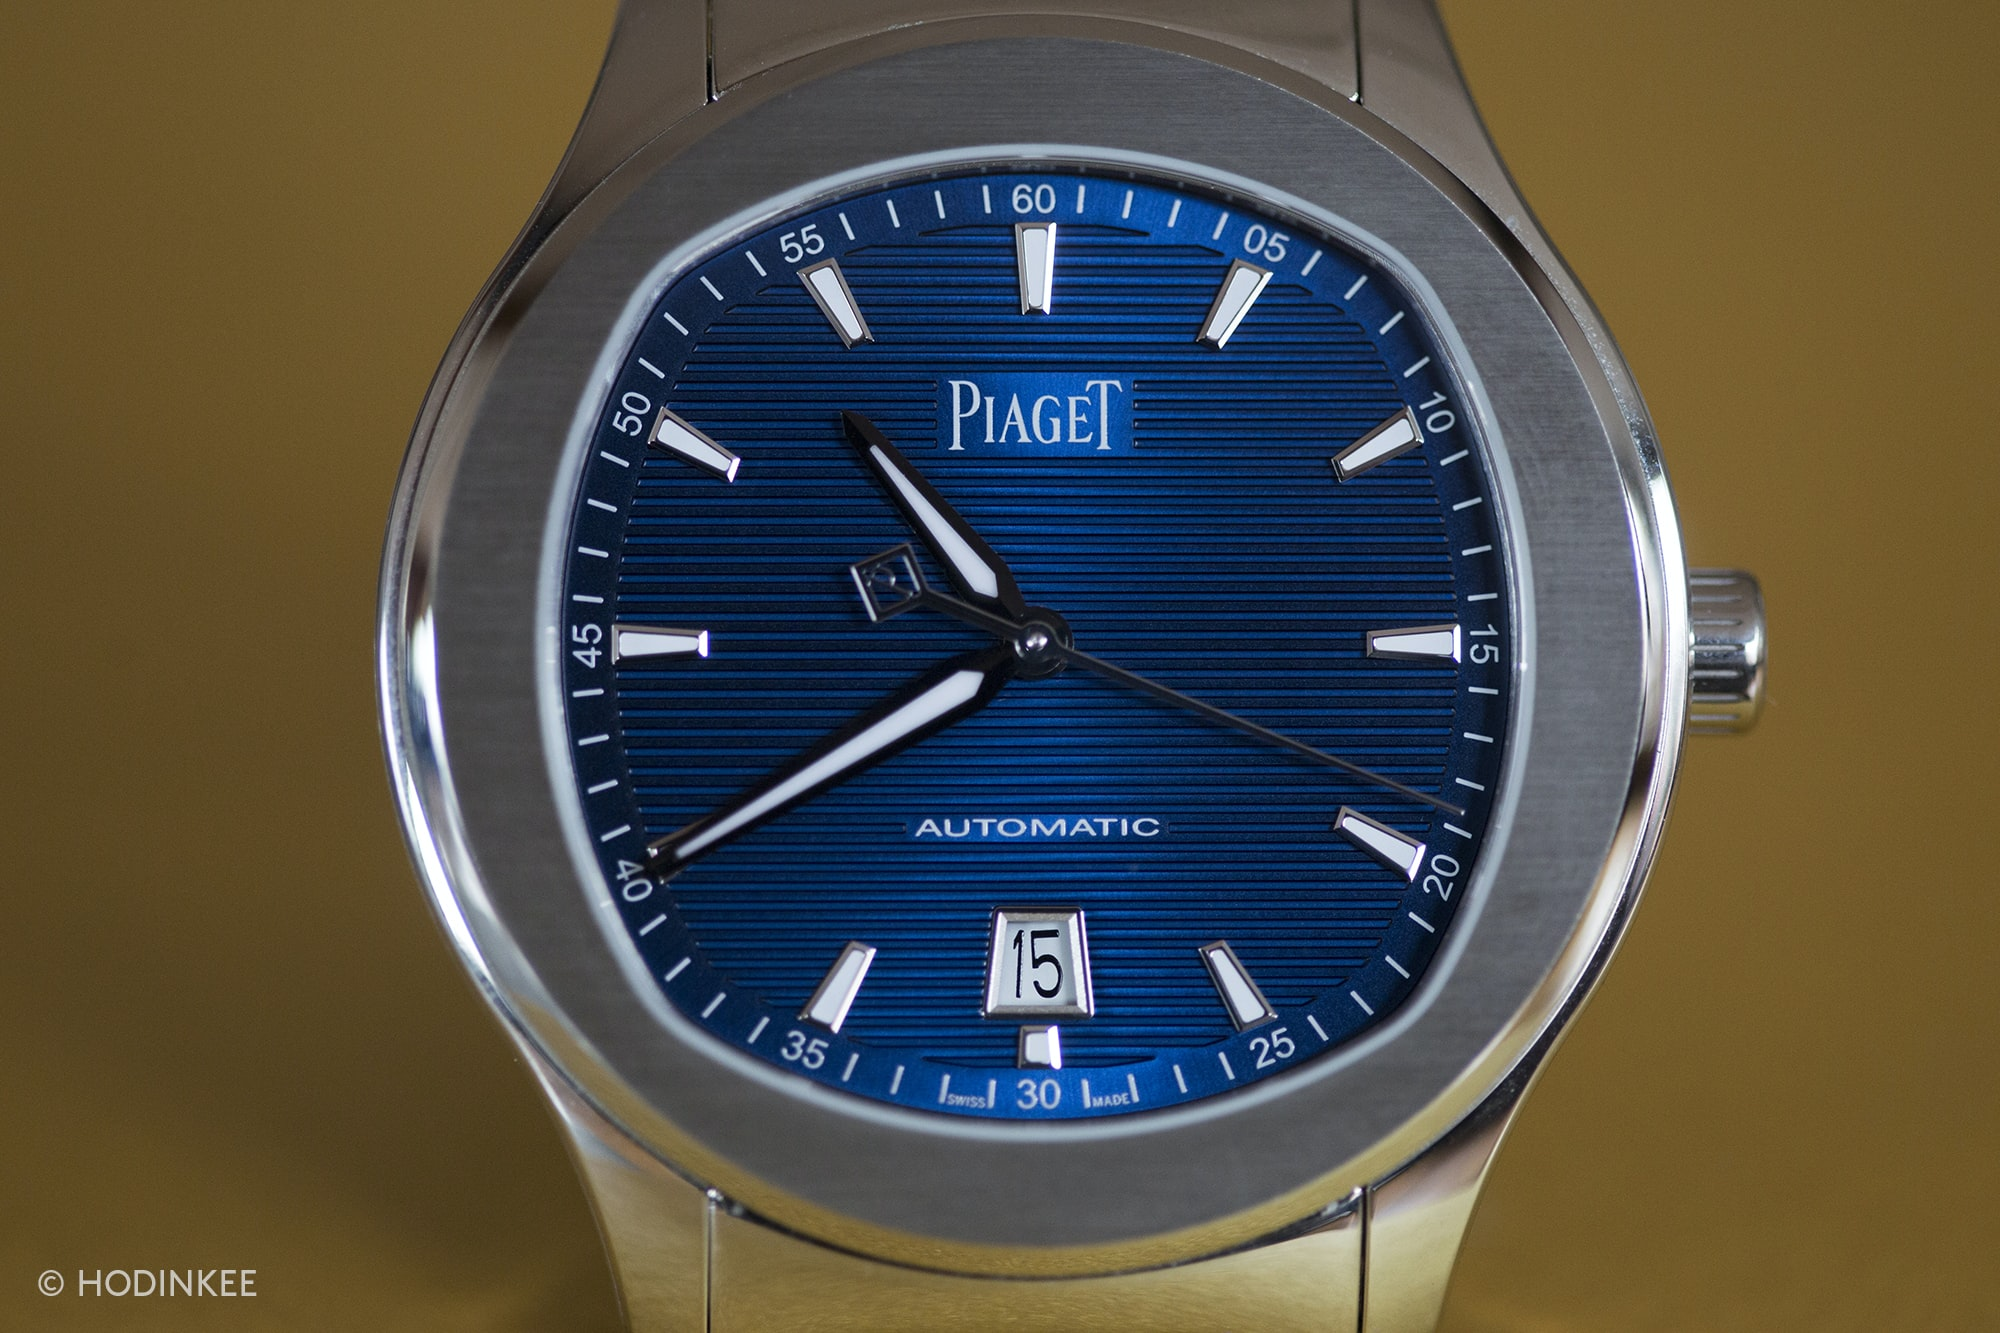 Three On Three: Comparing The Vacheron Constantin Overseas, The Piaget Polo S, And The Audemars Piguet Royal Oak 15400 Three On Three: Comparing The Vacheron Constantin Overseas, The Piaget Polo S, And The Audemars Piguet Royal Oak 15400 20016220 copy